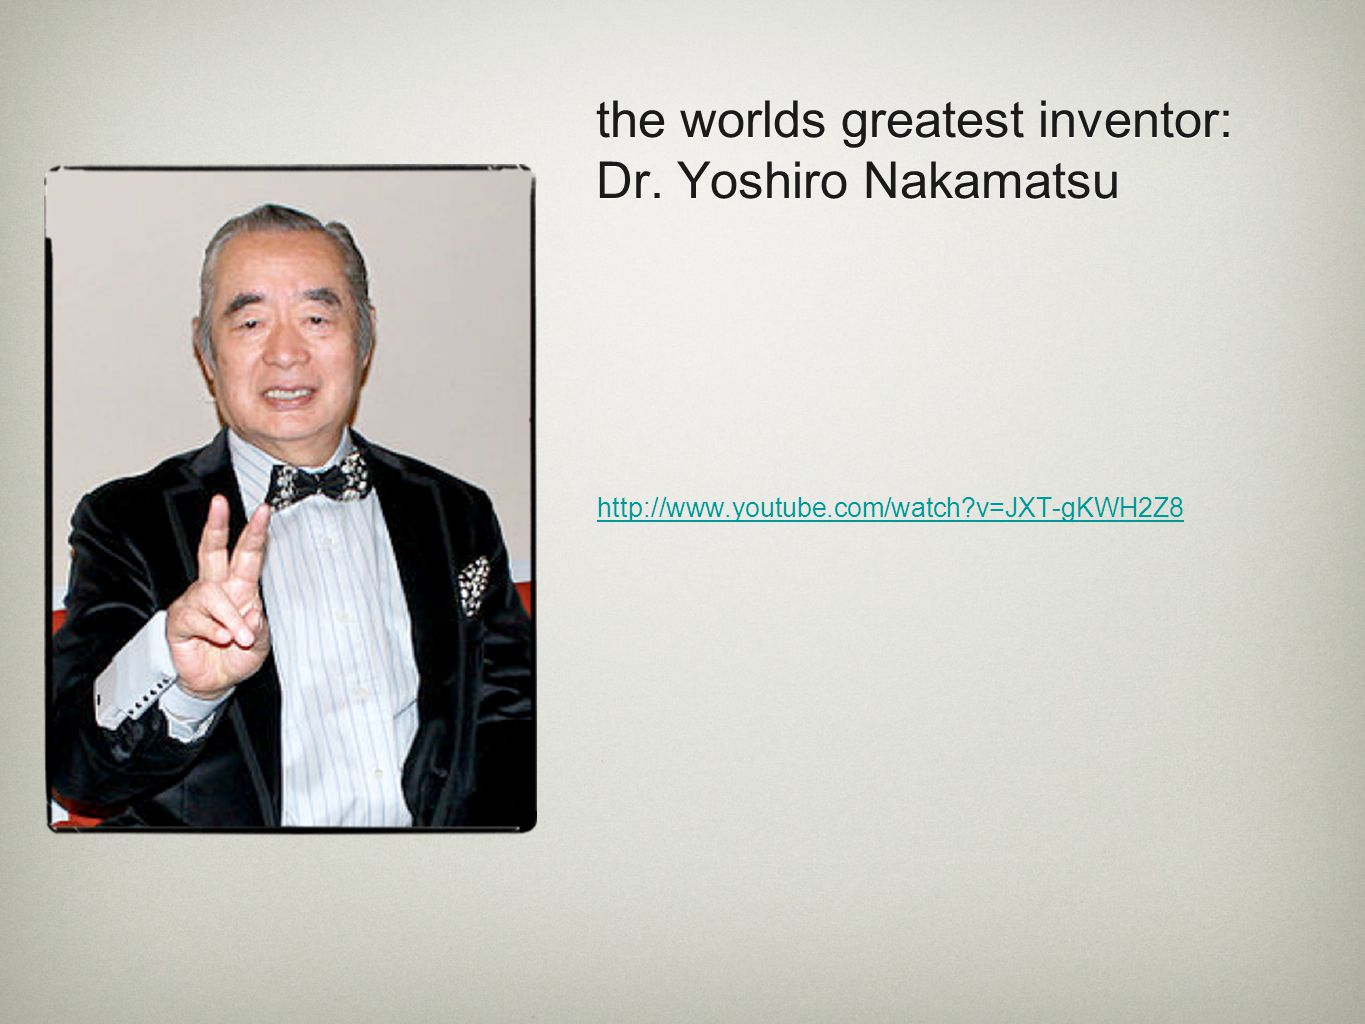 the worlds greatest inventor: Dr. Yoshiro Nakamatsu